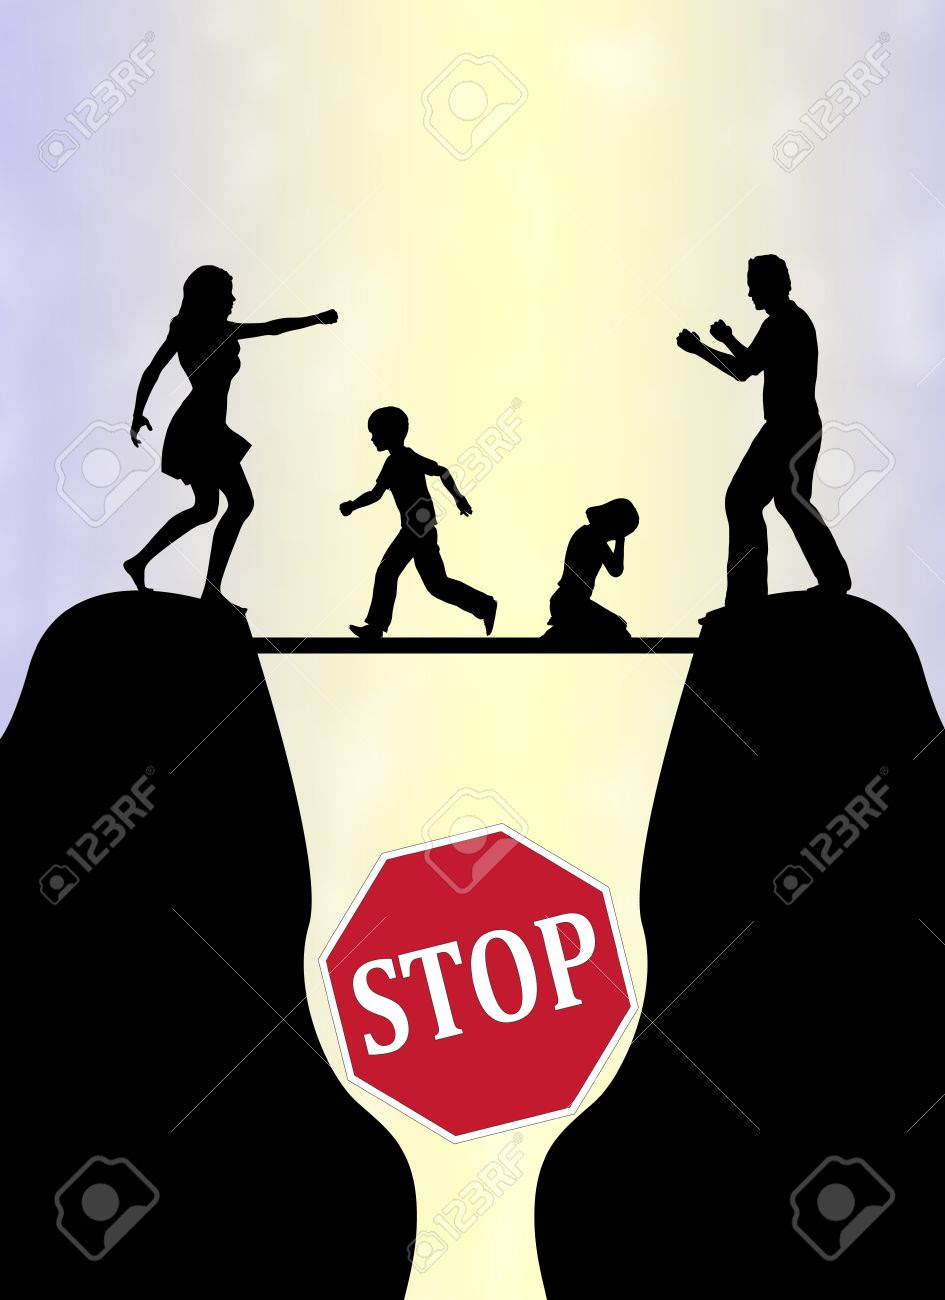 31794923-Stop-the-Family-Fight-Concept-sign-to-avoid-or-end-domestic-violence-with-children-as-main-victims-Stock-Photo.jpg (945×1300)